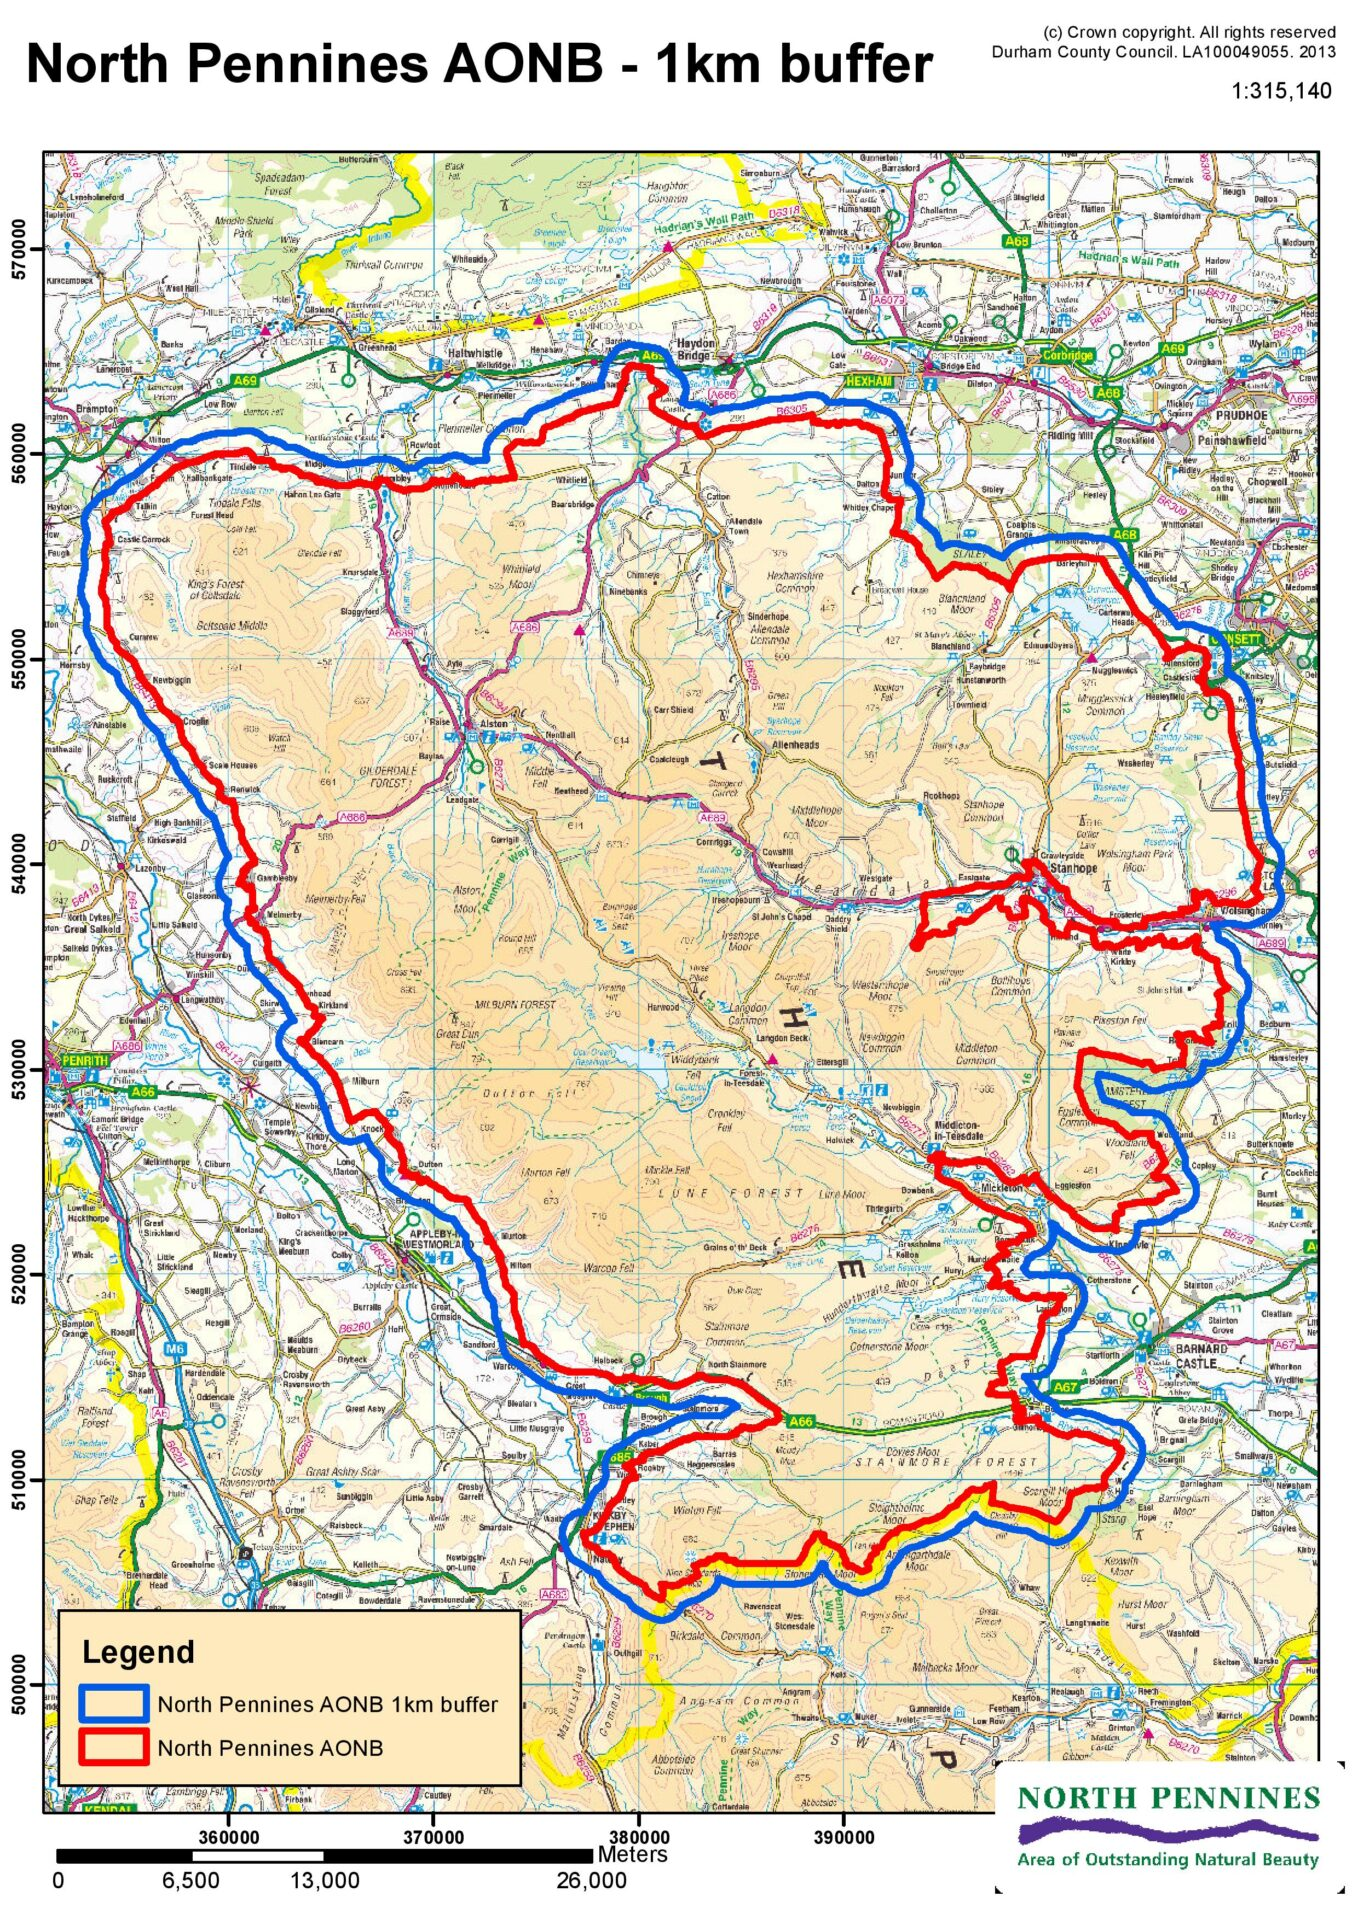 Map of the AONB with 1km buffer zone